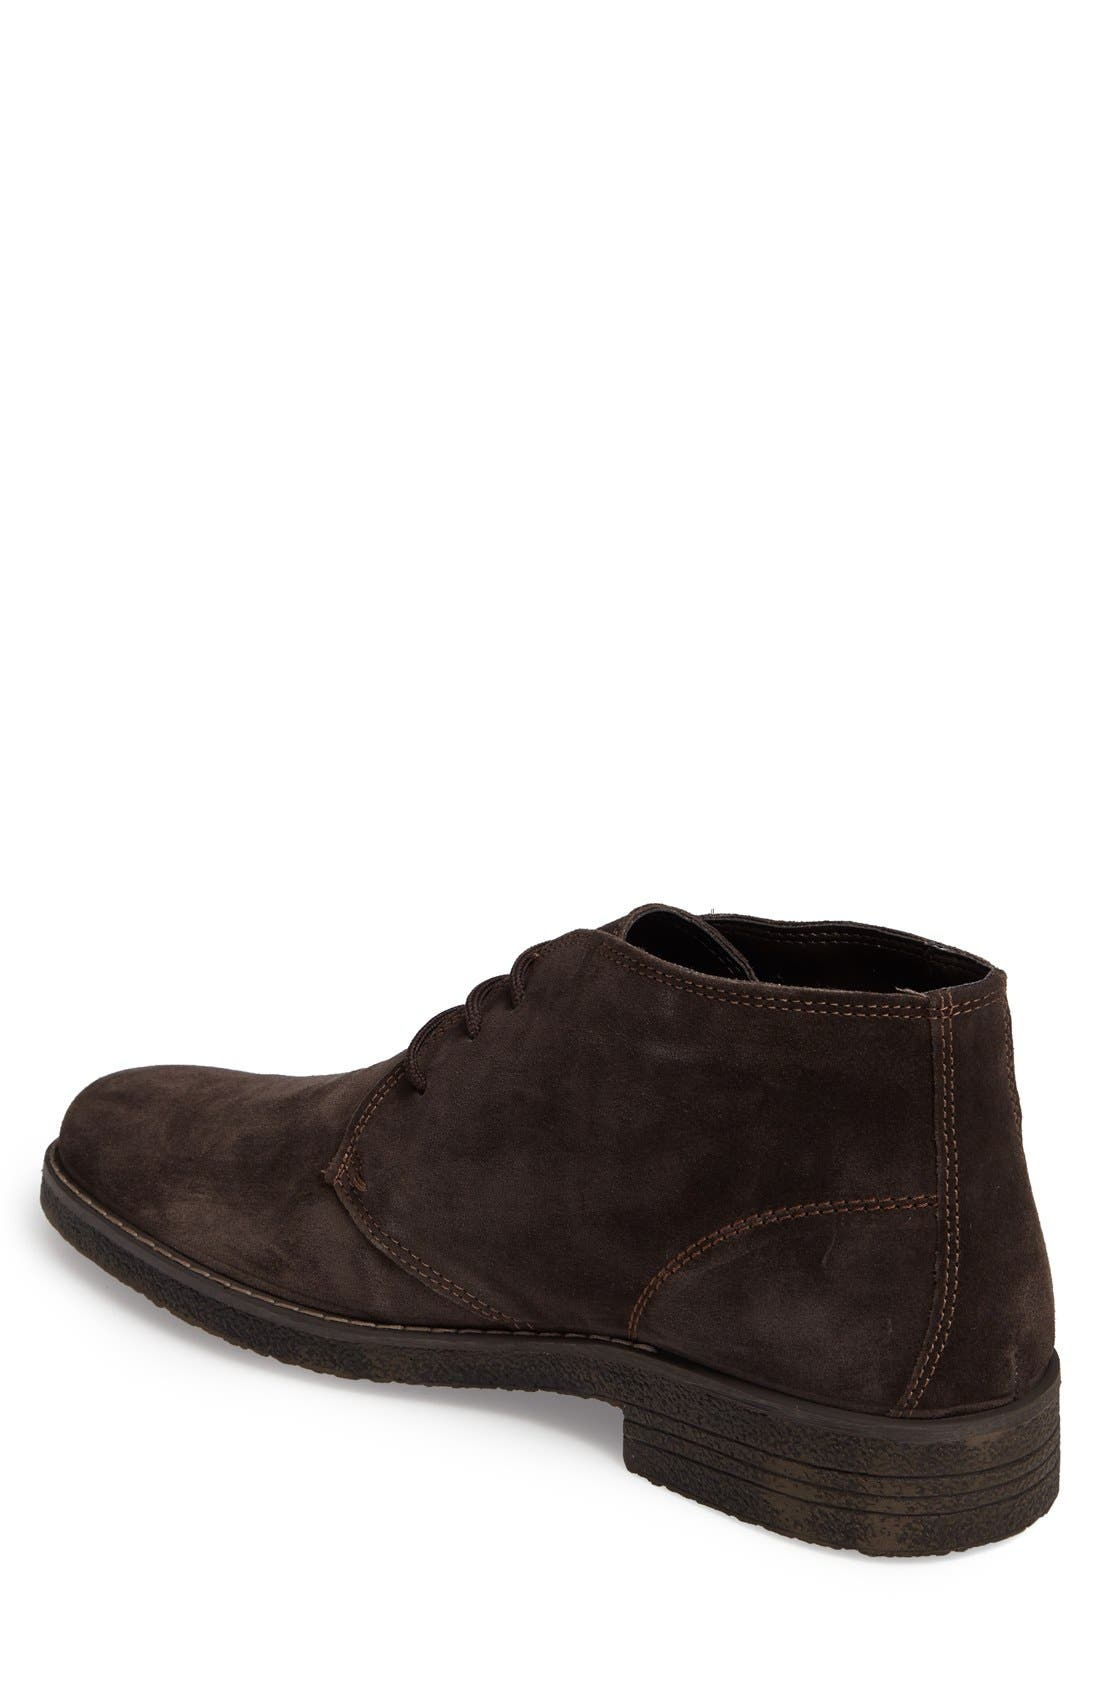 'Tyler' Chukka Boot,                             Alternate thumbnail 15, color,